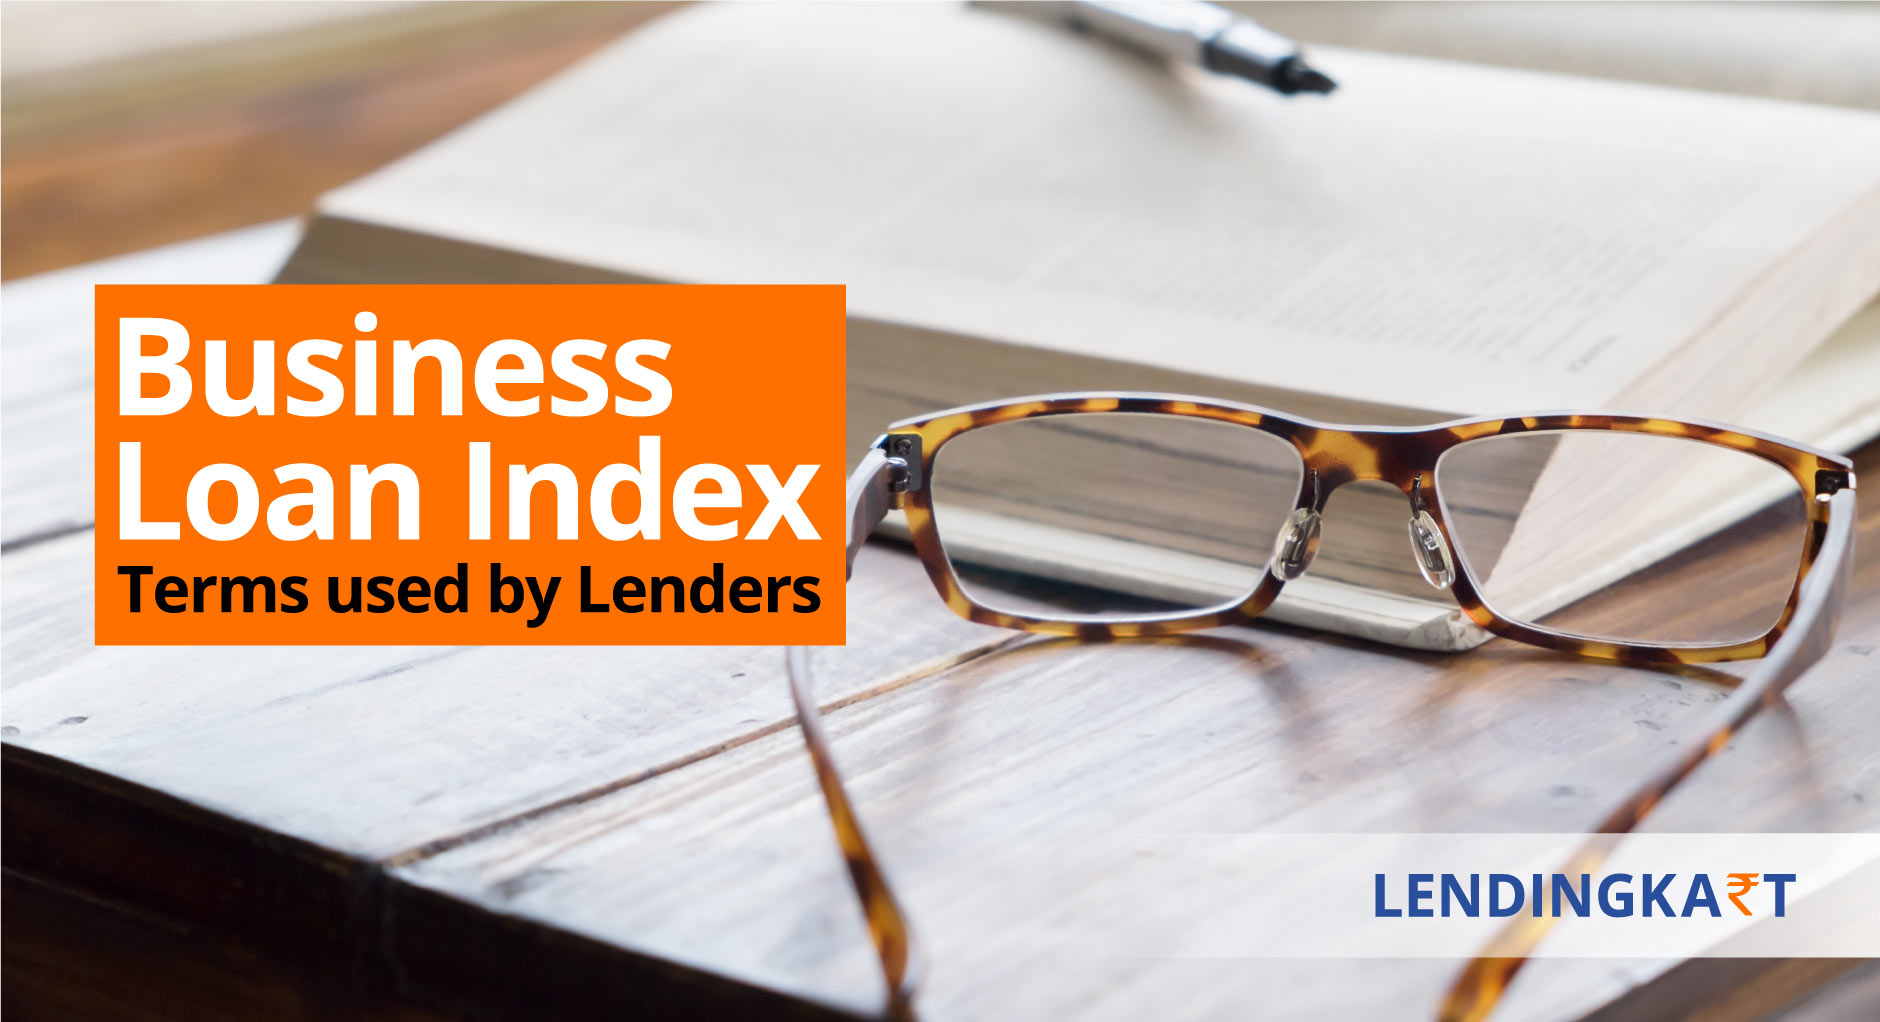 Business Loan Index - Terms used by Lenders